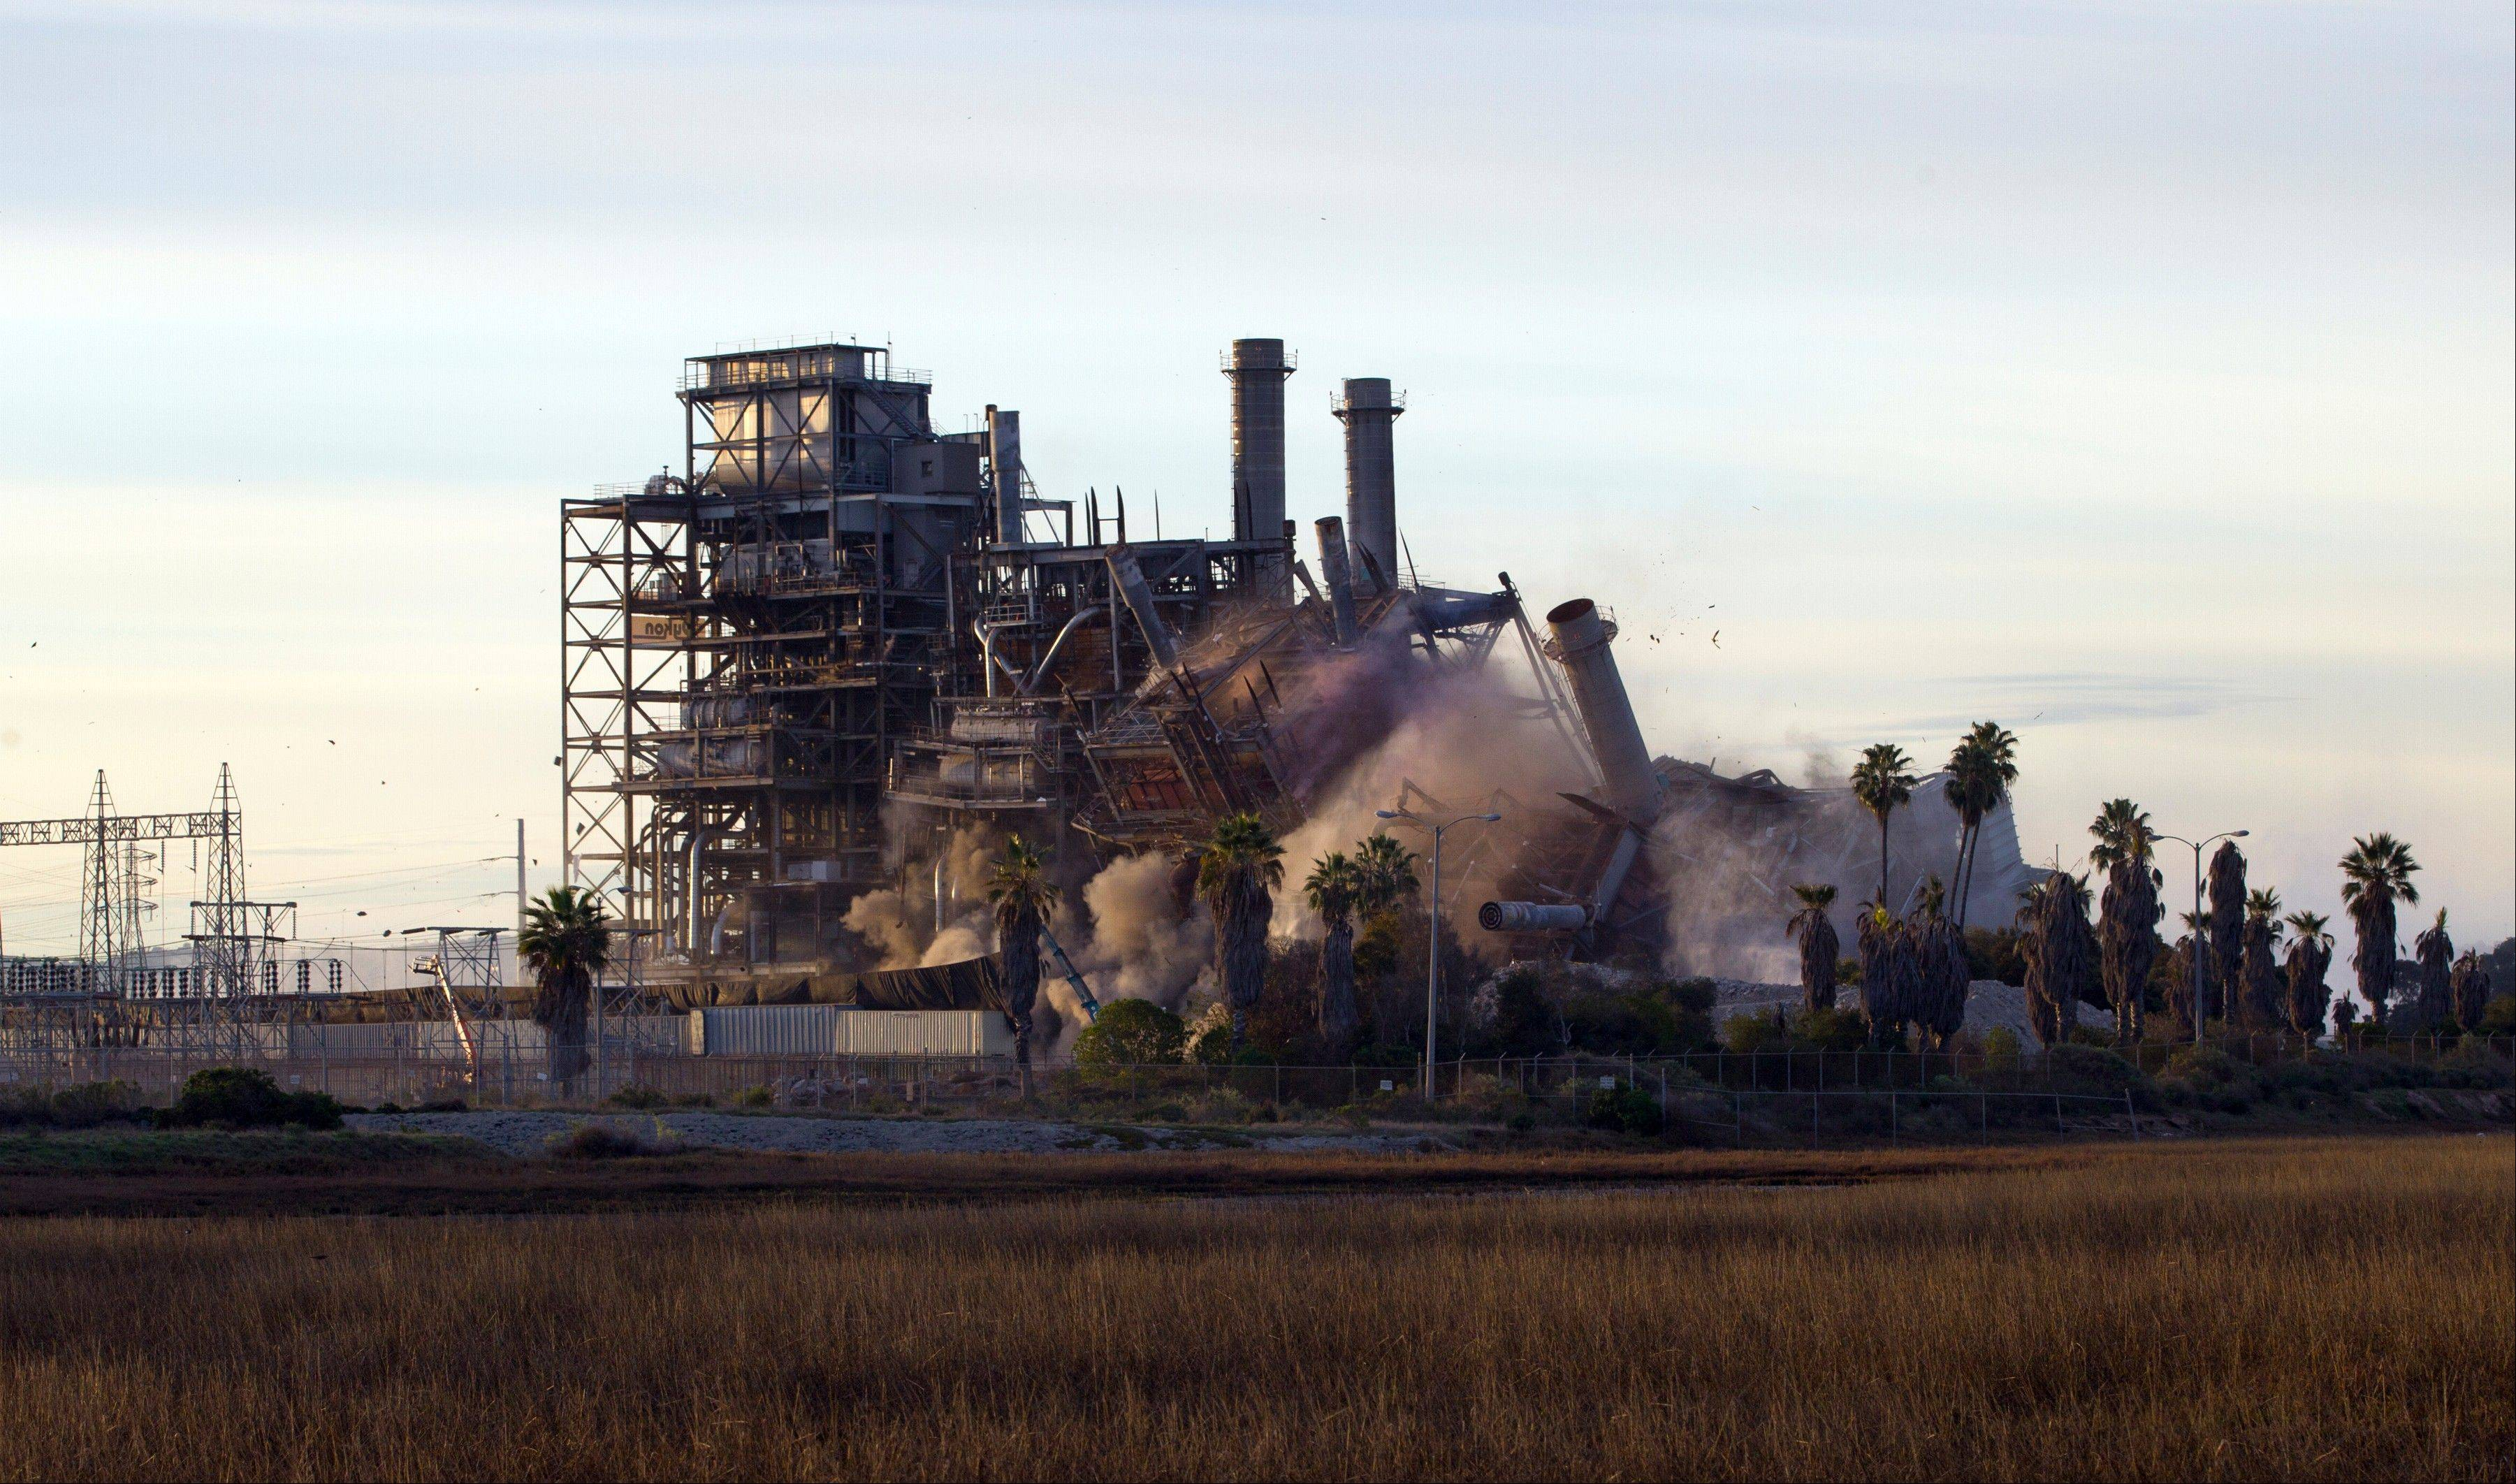 The South Bay Power Plant collapses Saturday after imploding.